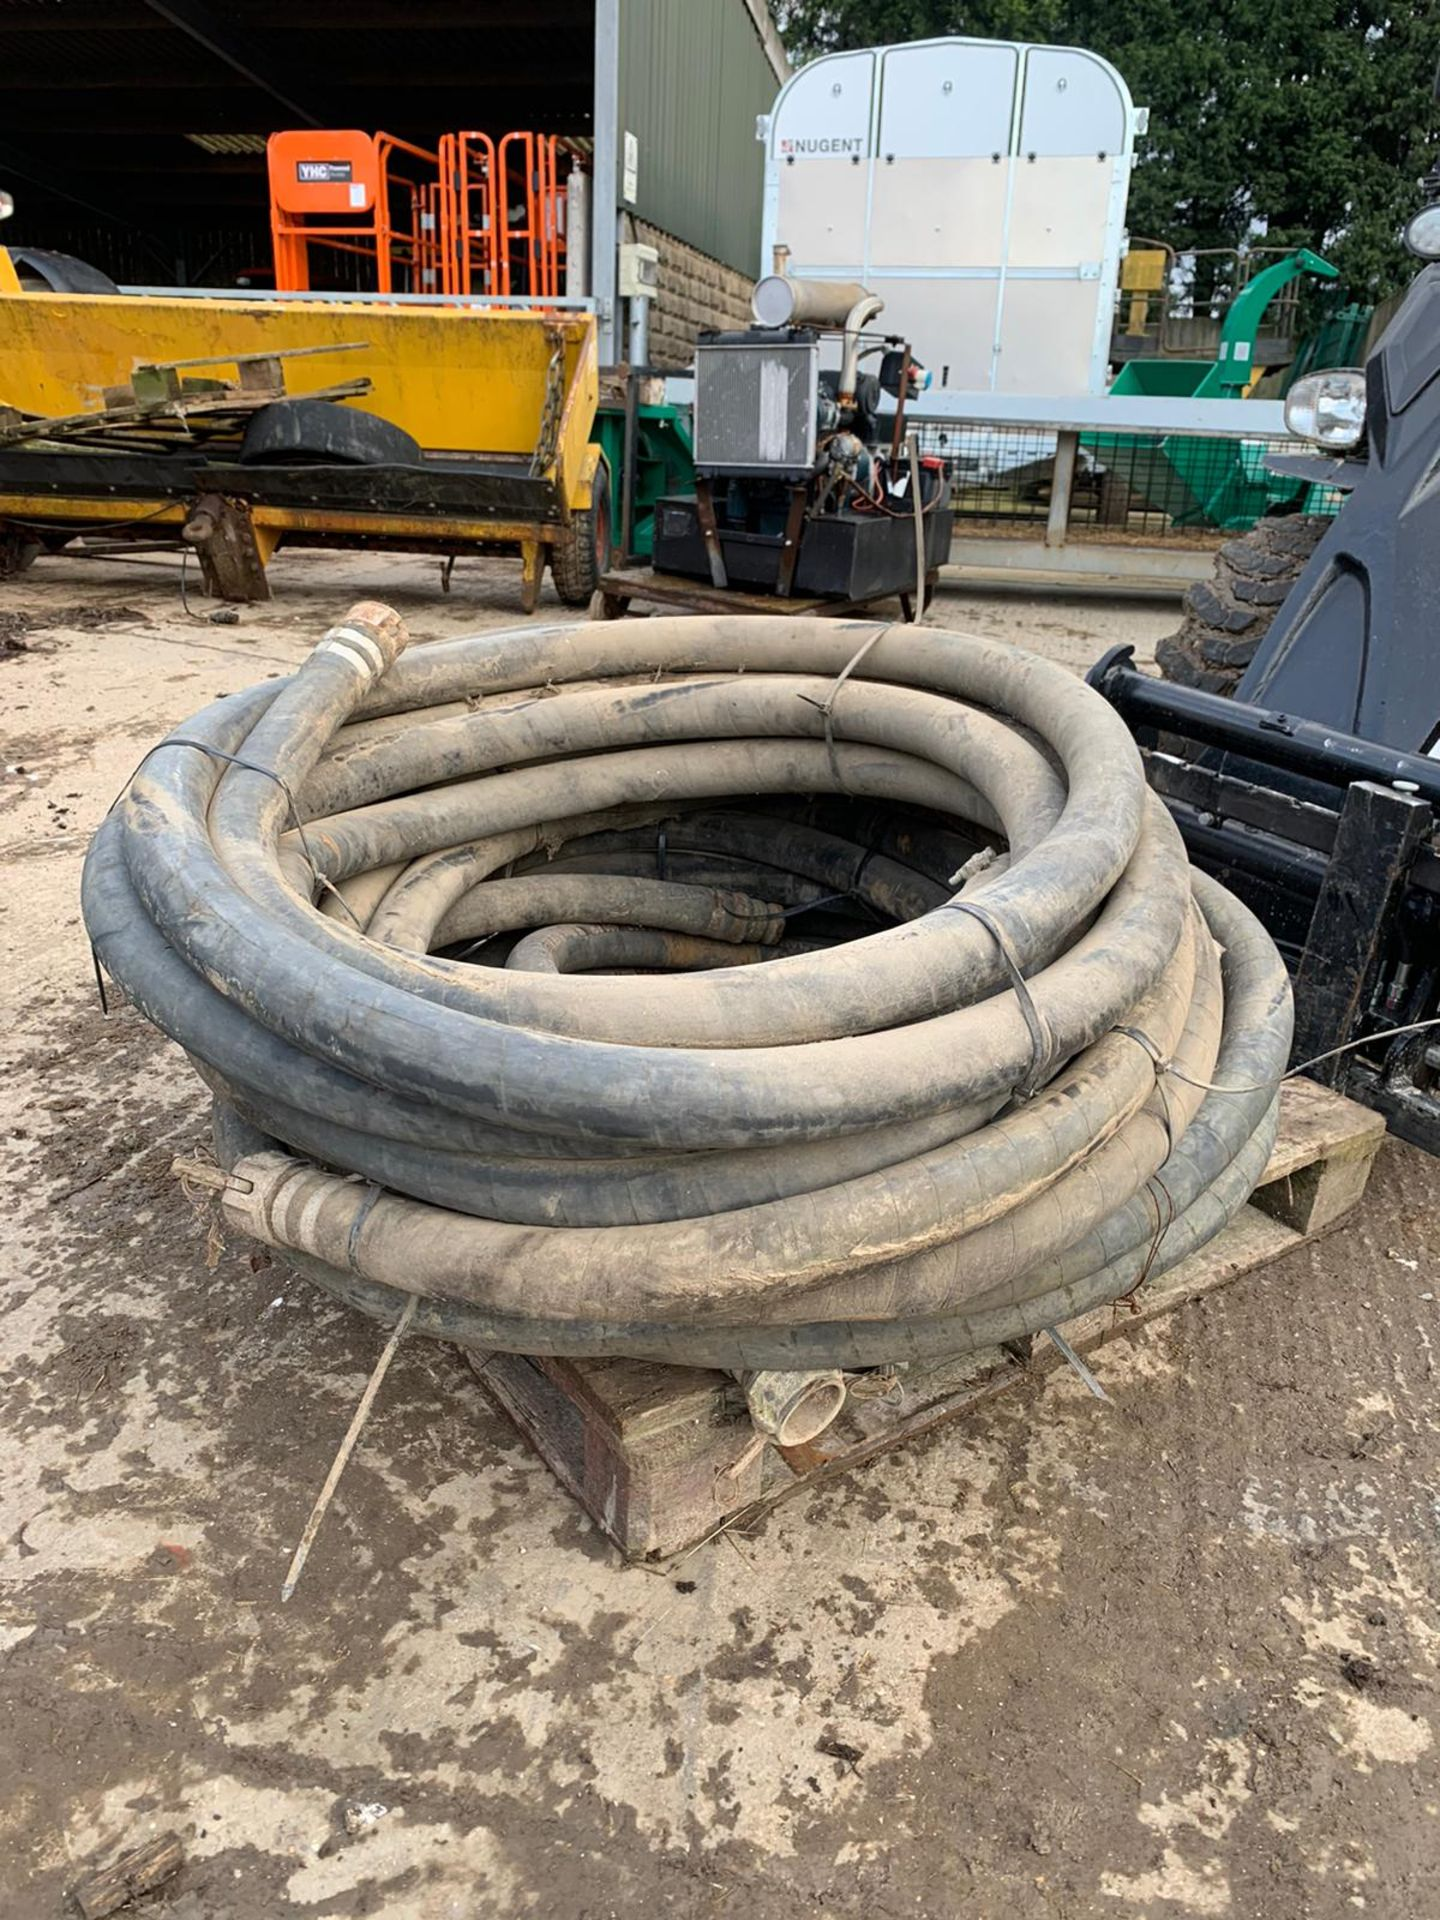 Lot 14 - CONCRETE PUMP PIPES, YOU ARE BIDDING FOR ALL 4 PIPES ON THE PALLET *PLUS VAT*